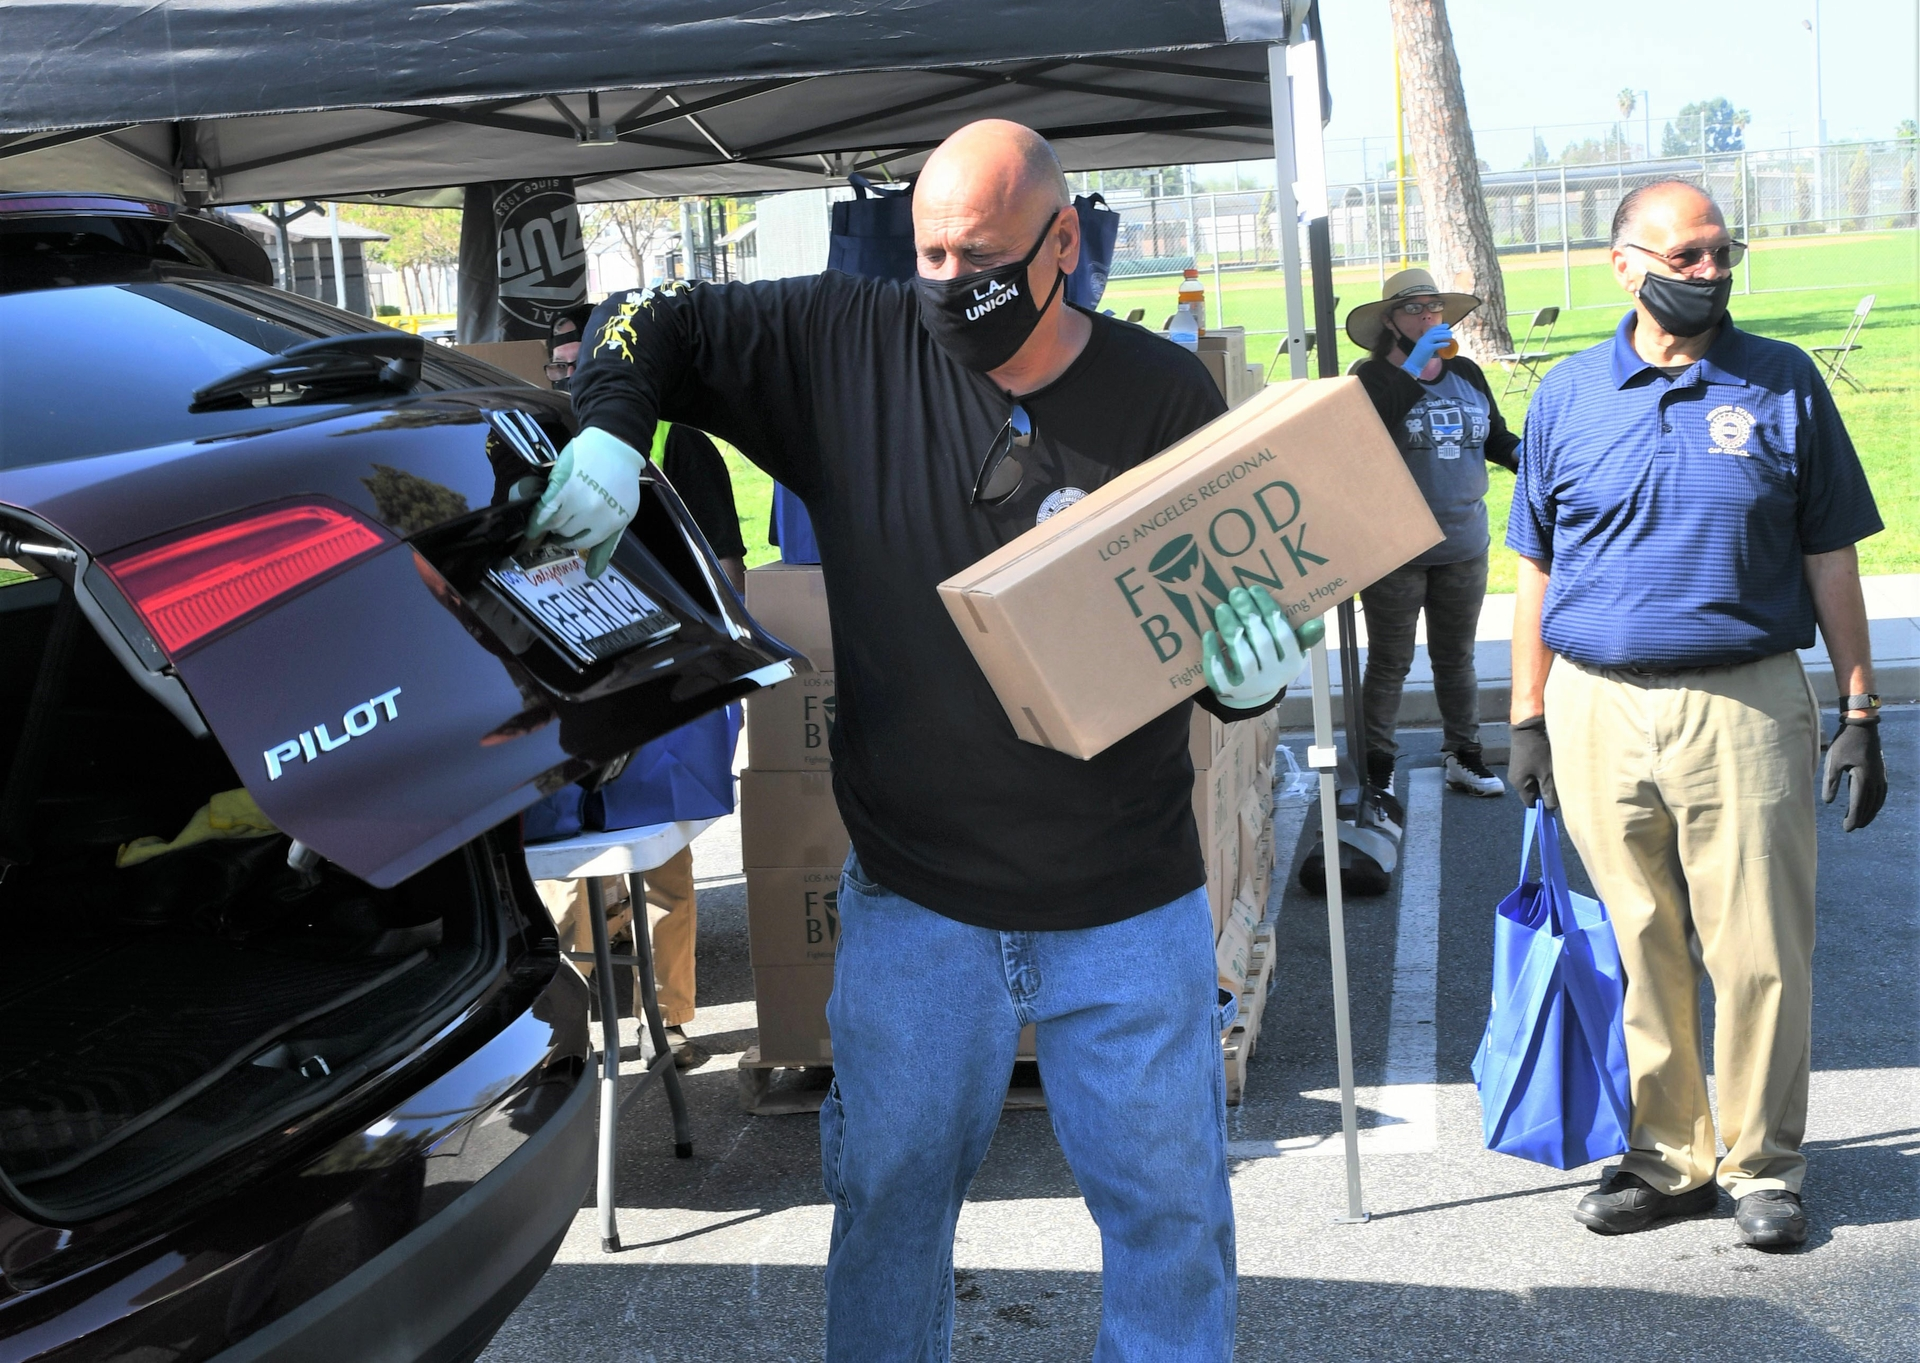 IBEW 47 member and SCE employee Robert Madrigal loads boxes at a recent food distribution event.